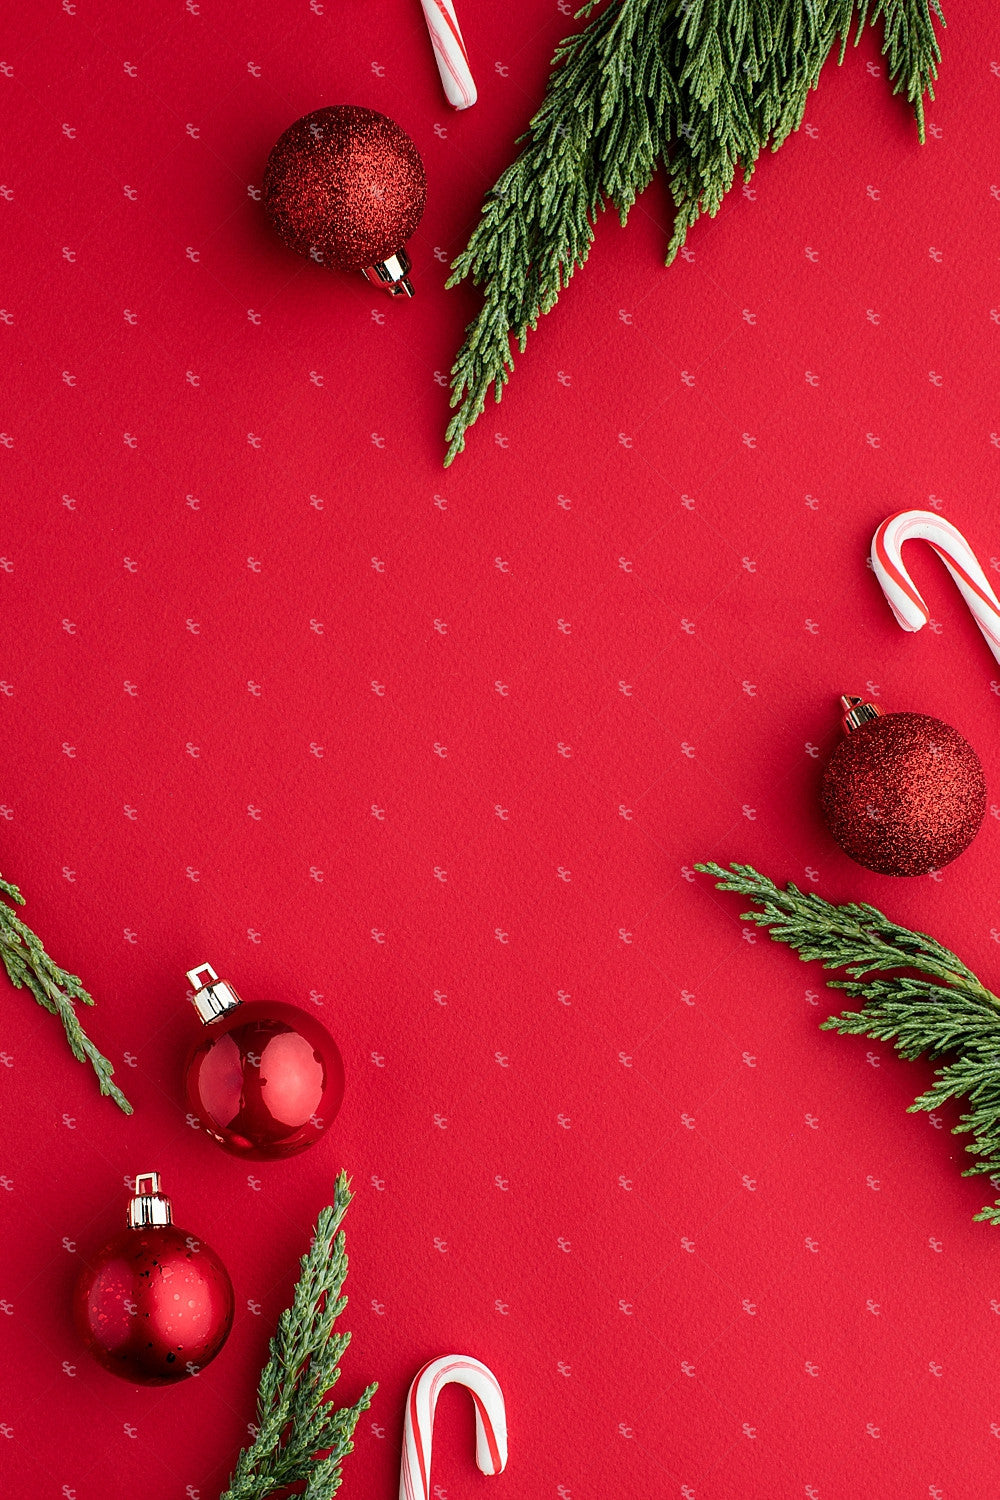 New: Styled Holiday Stock Photography For Creatives